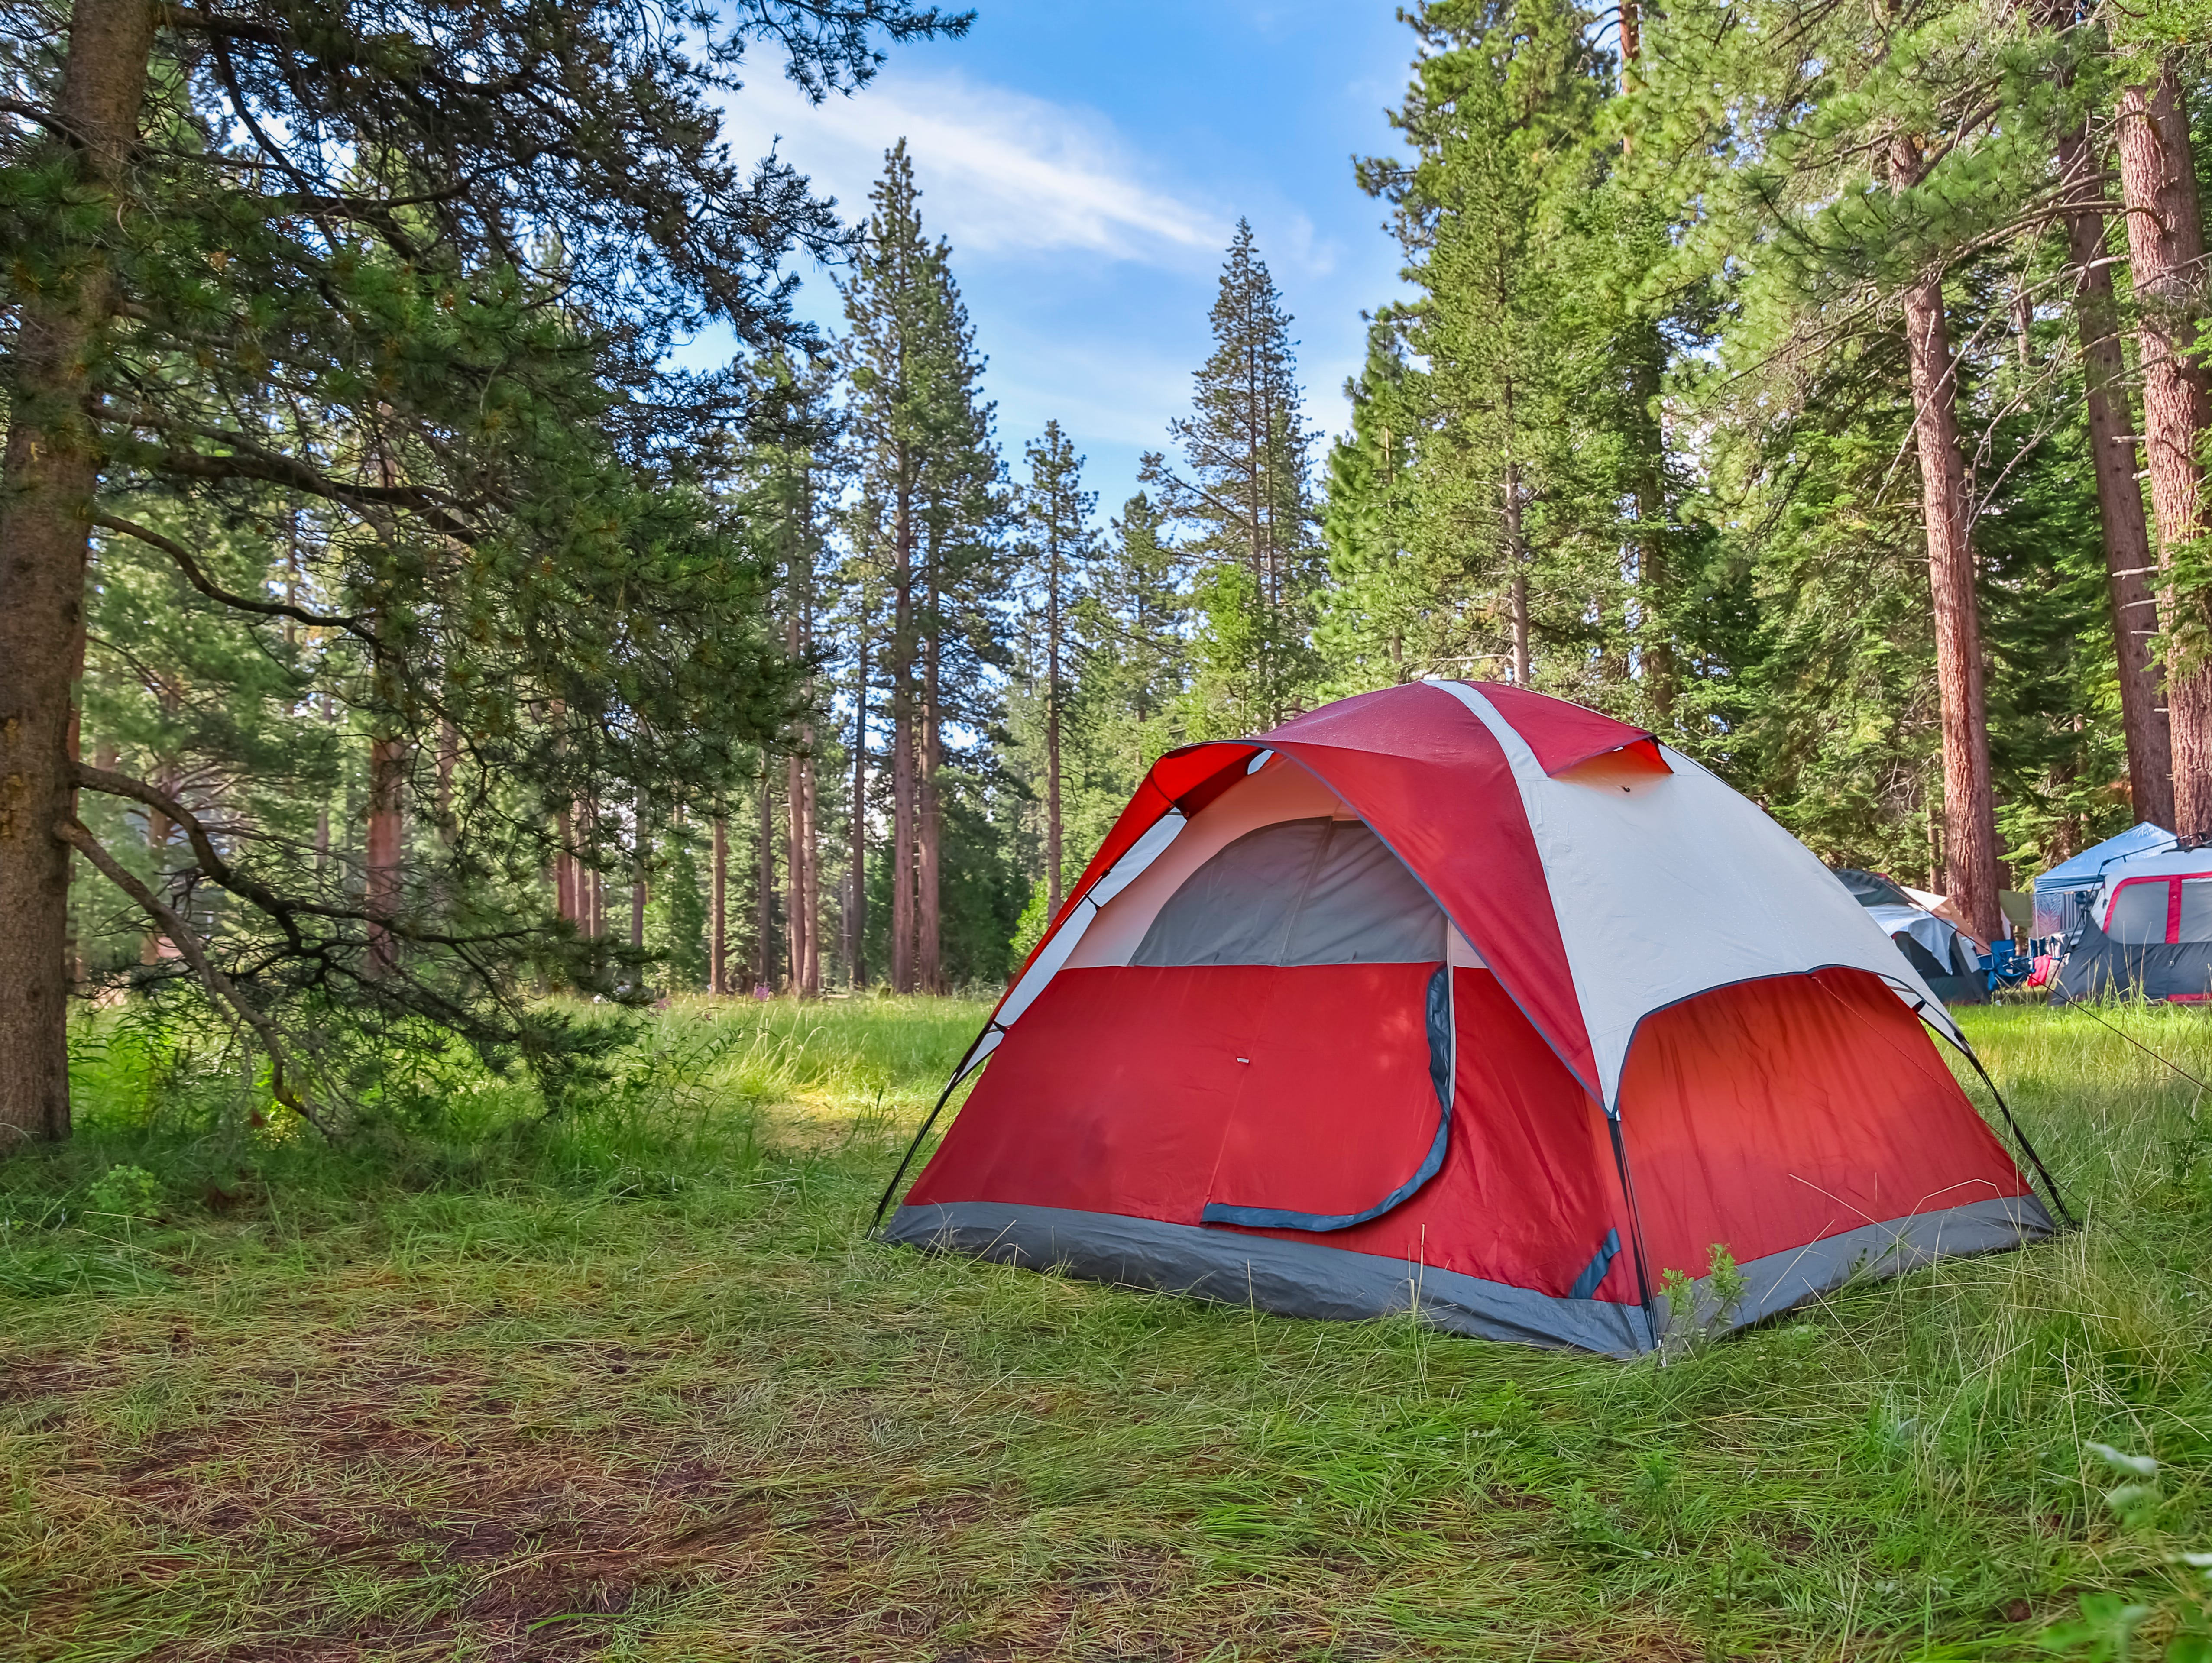 Spend time with Mother Nature! Enter 6/4-6/27 for a chance to win camping gear worth over $500!